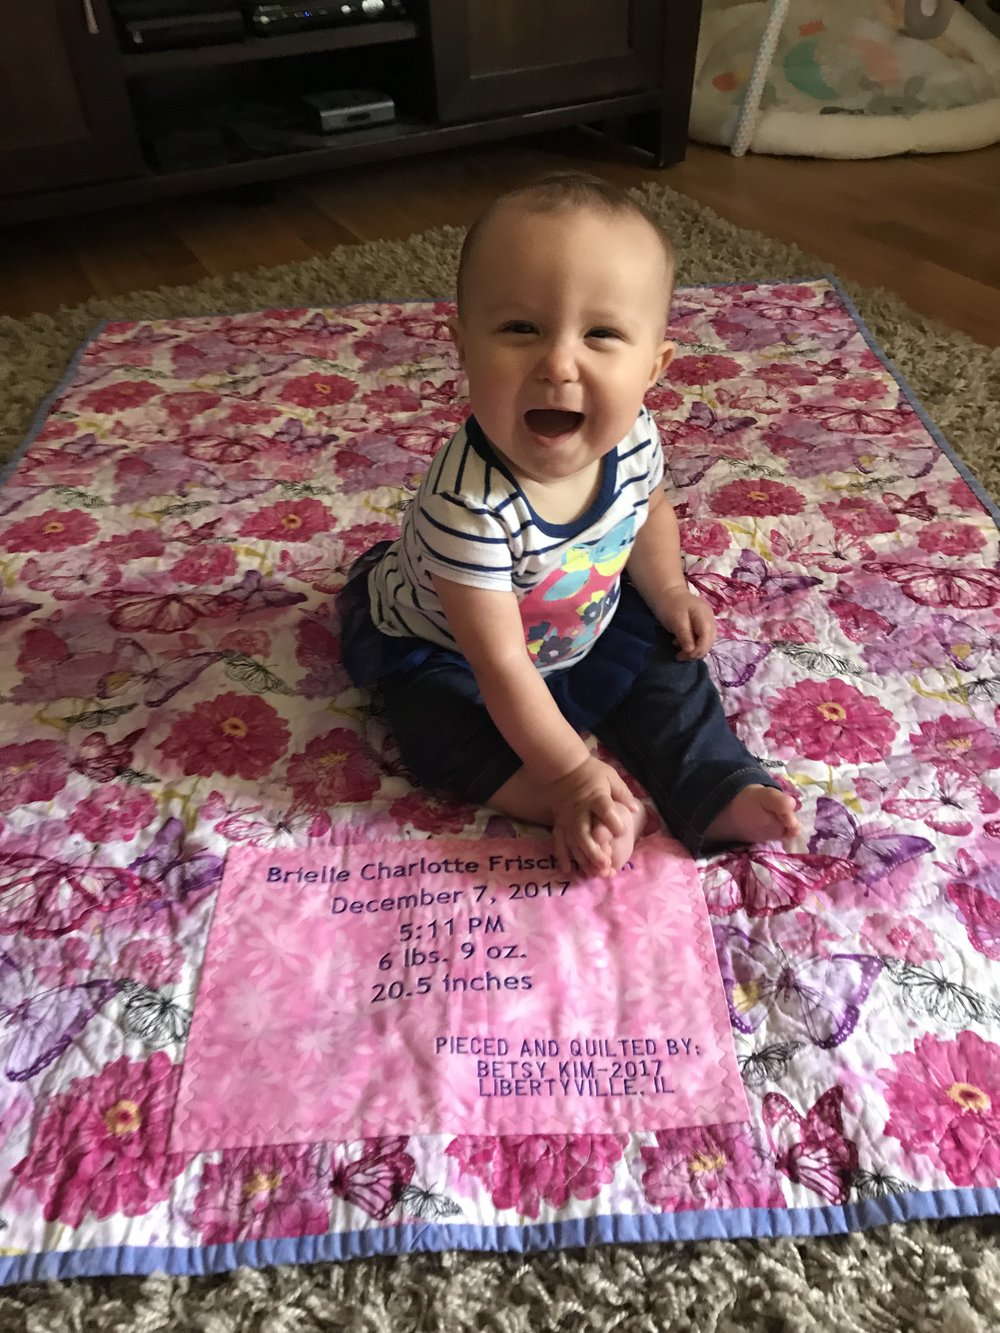 Here is sweet Brielle smiling at her mom and dad on her butterfly quilt!  Thanks for sharing this precious photo!